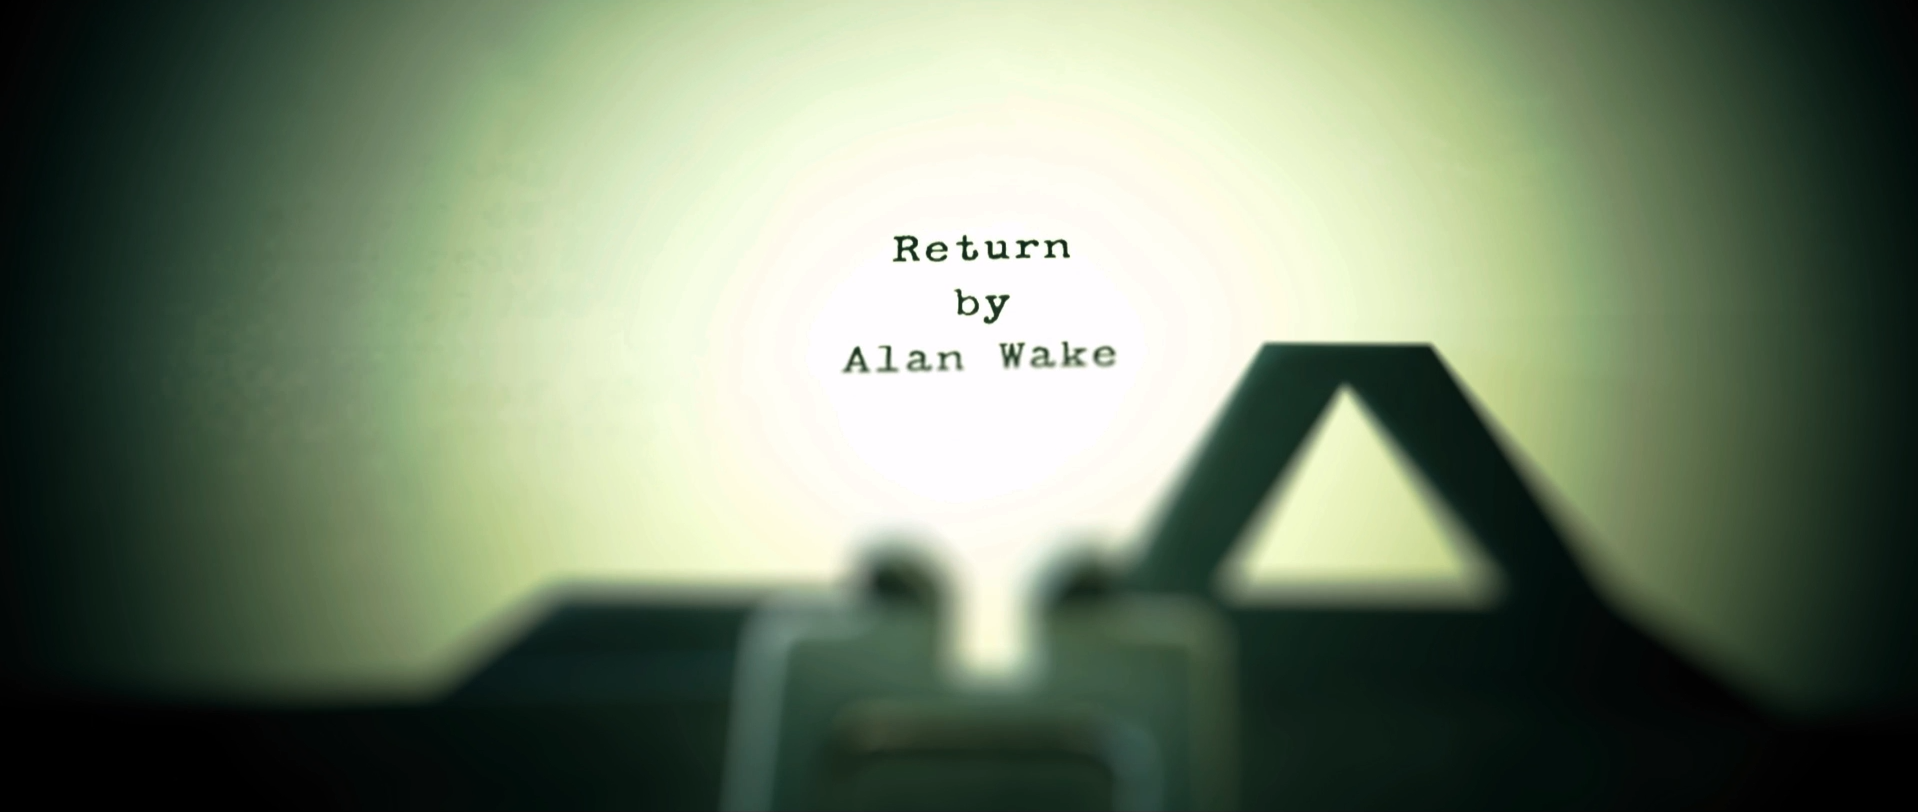 http://vignette3.wikia.nocookie.net/alanwake/images/6/6f/Return.png/revision/latest?cb=20120224004849